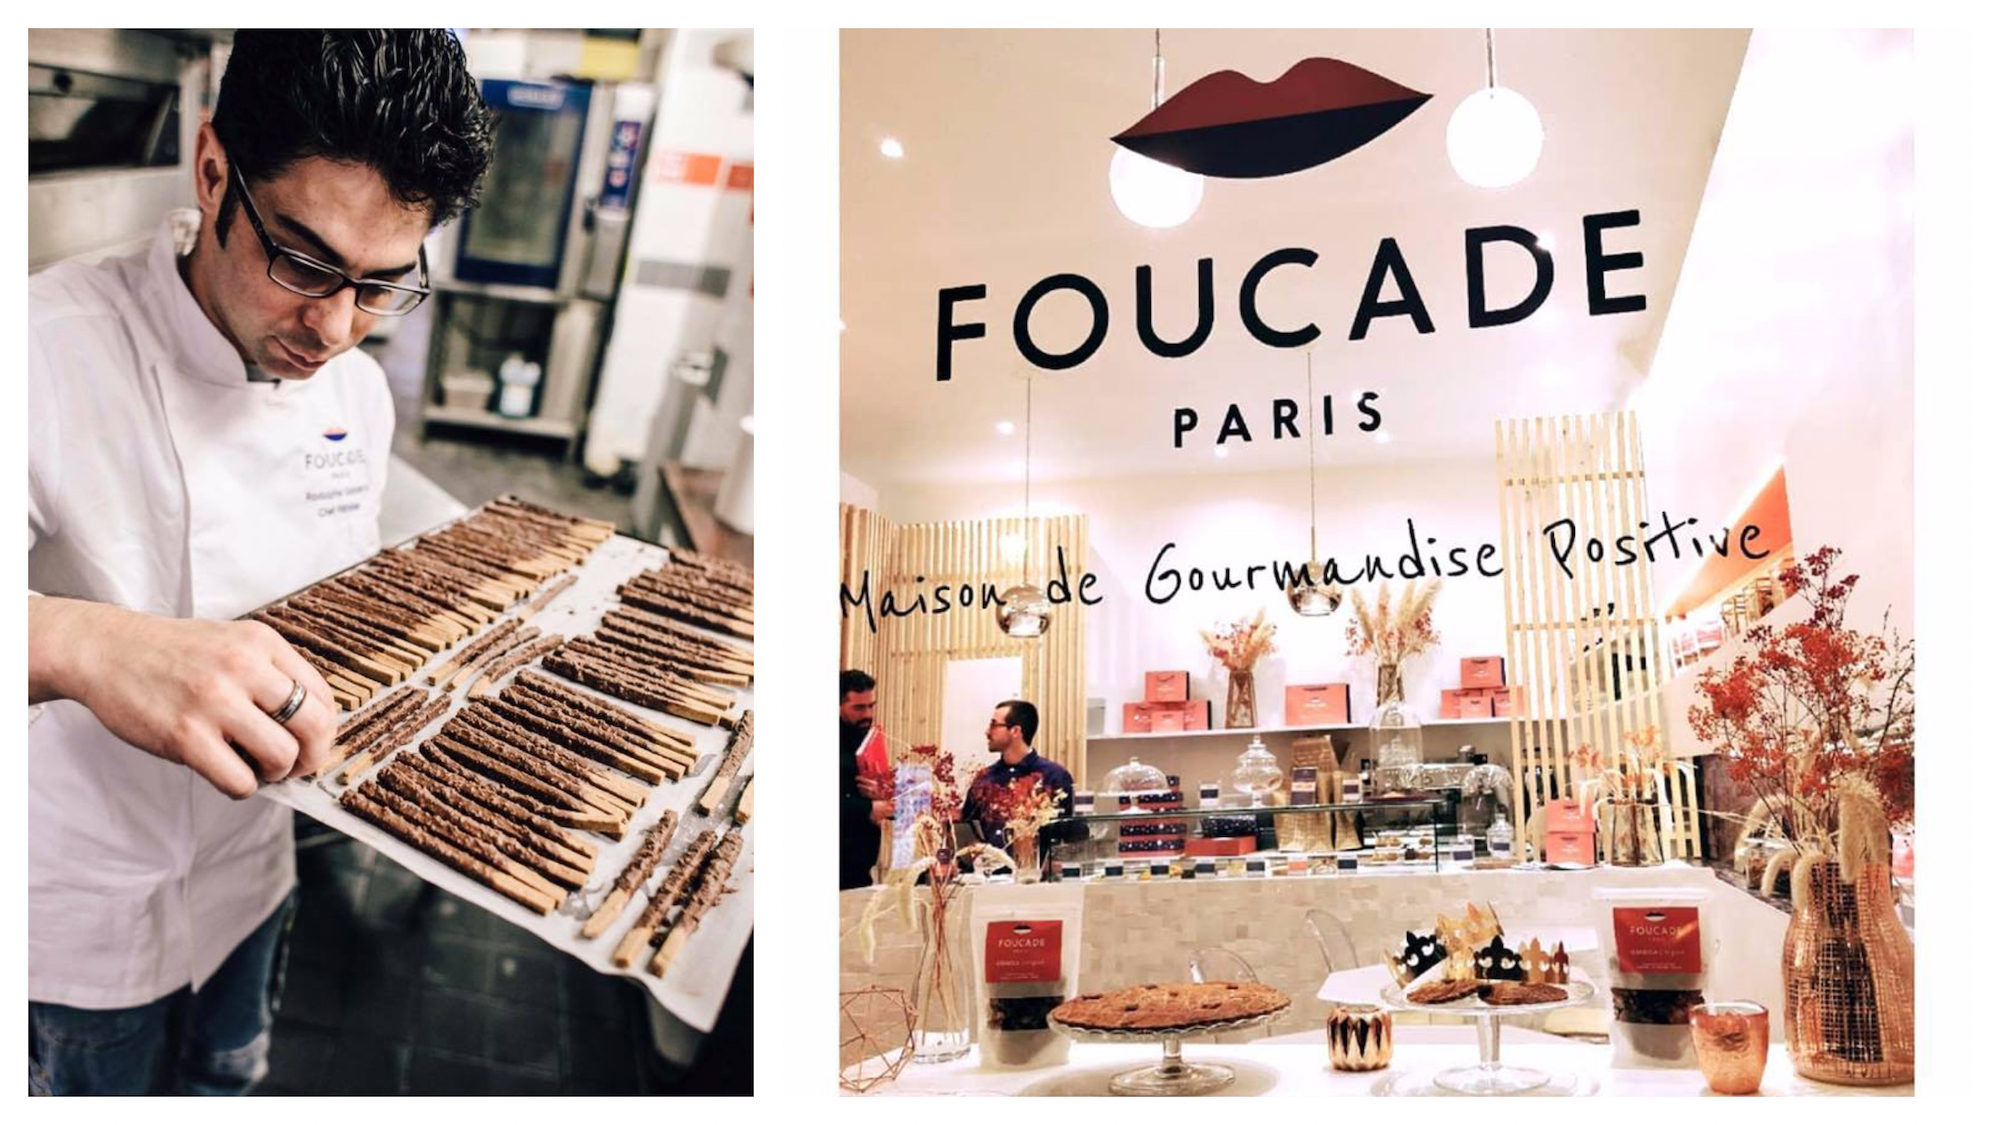 The baker at Foucade, gluten-free bakery in Paris (left) and its window with cakes displayed (right).